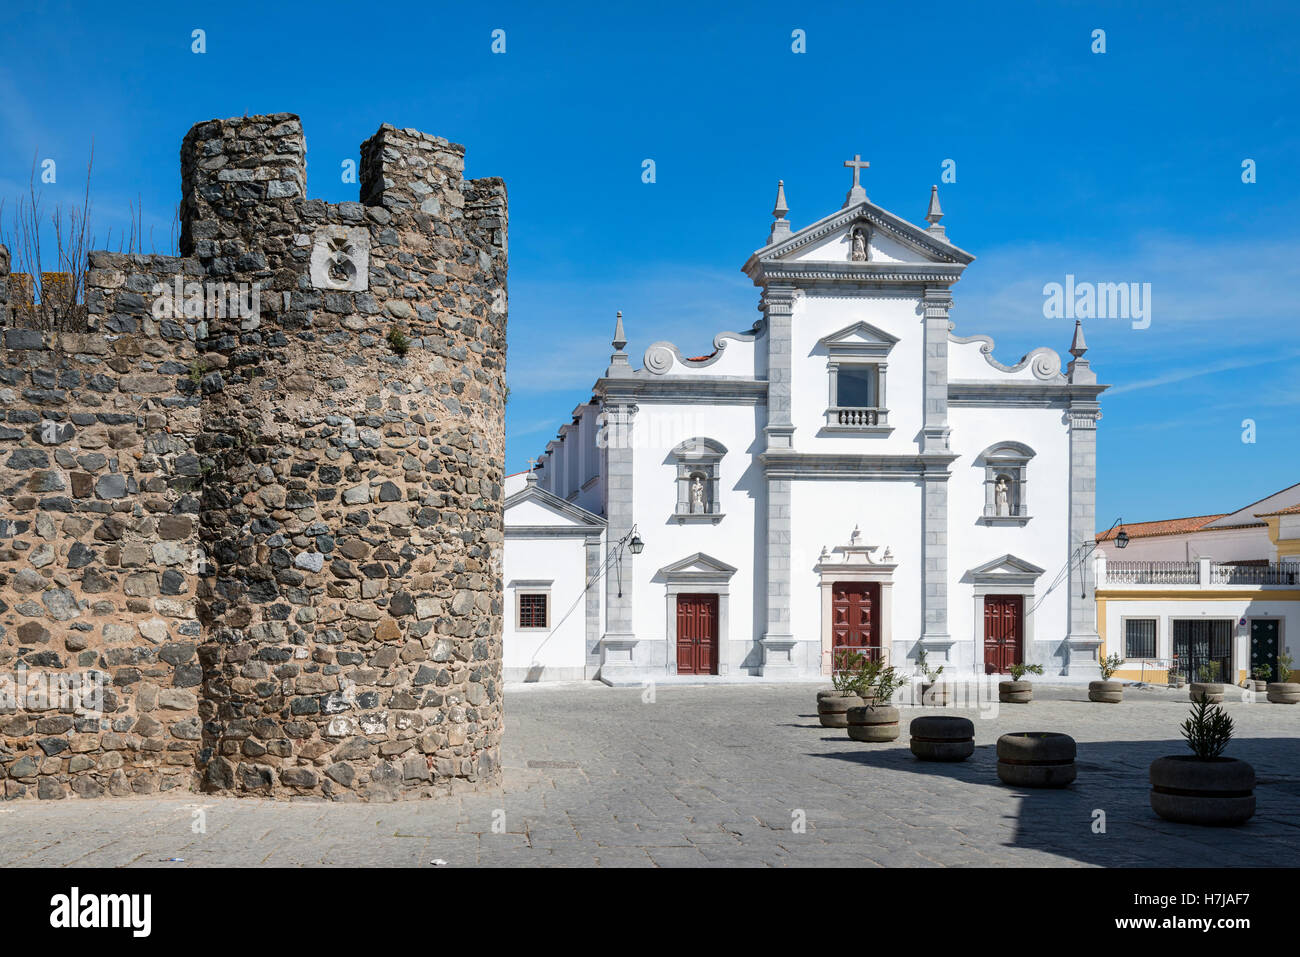 Da Sé, Beja Cathedral and Castle Walls, Alentejo, Portugal Stock Photo